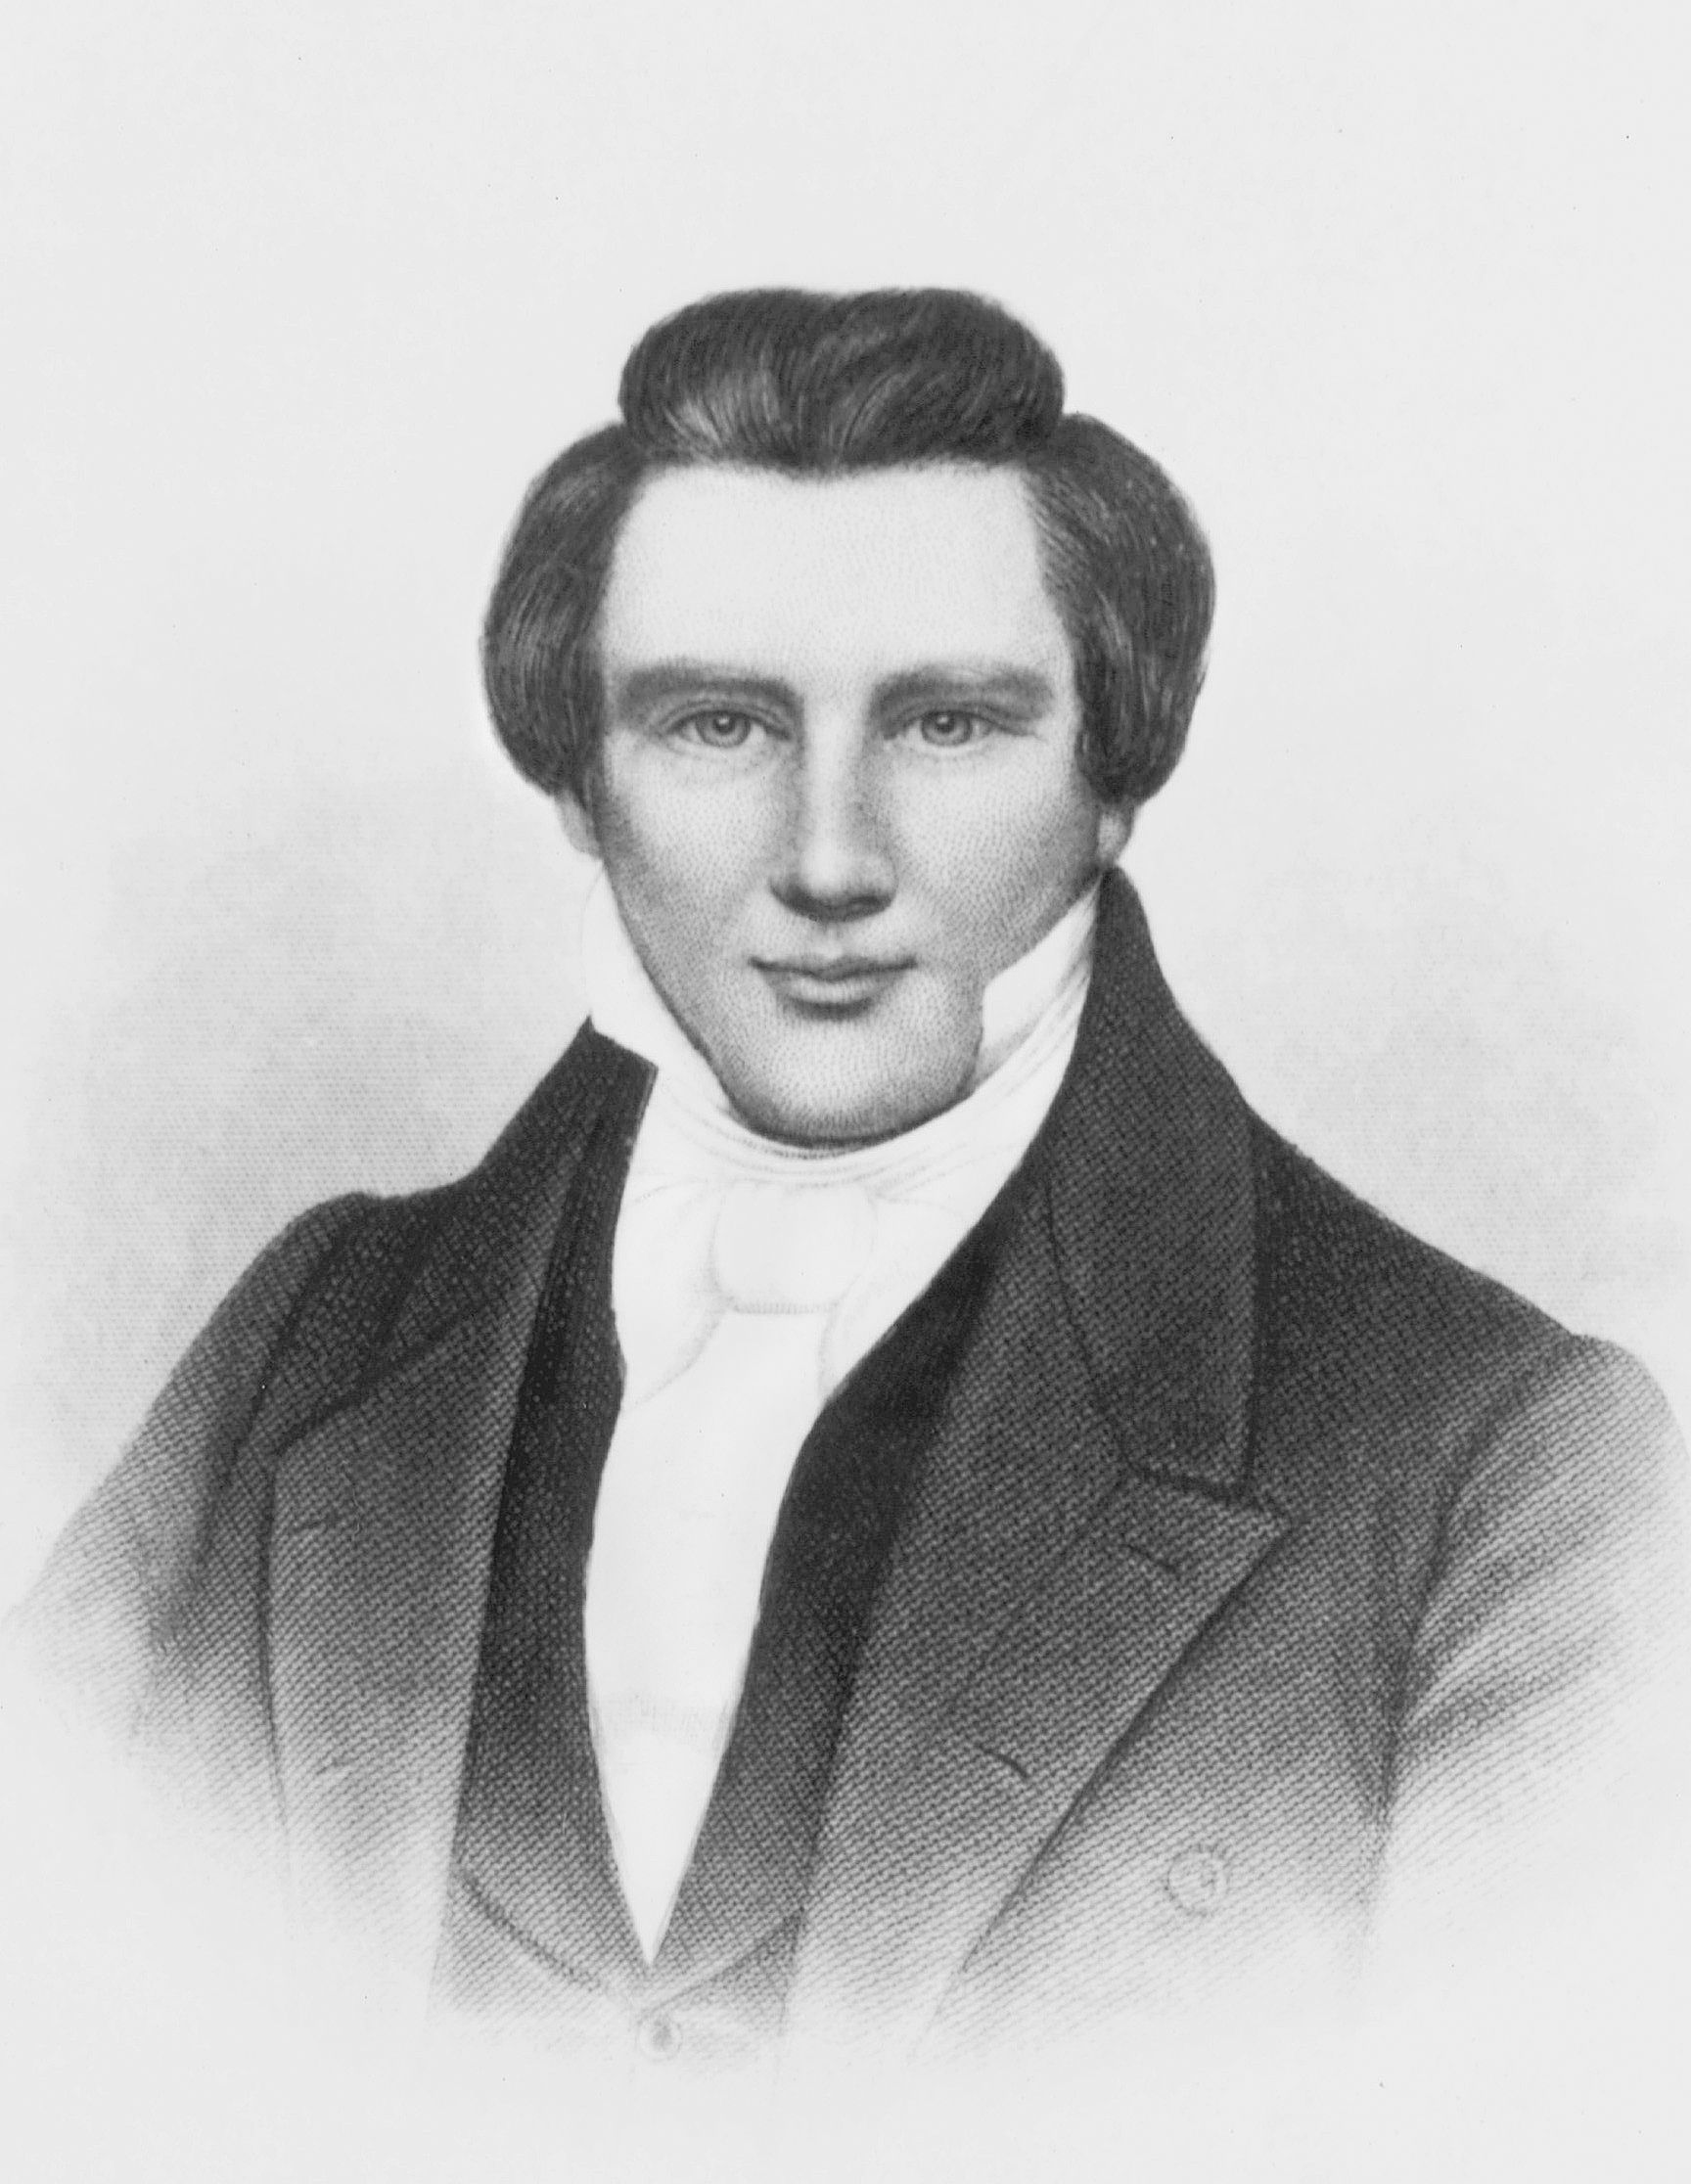 Joseph Smith Jr., by H. B. Hall & Sons of New York